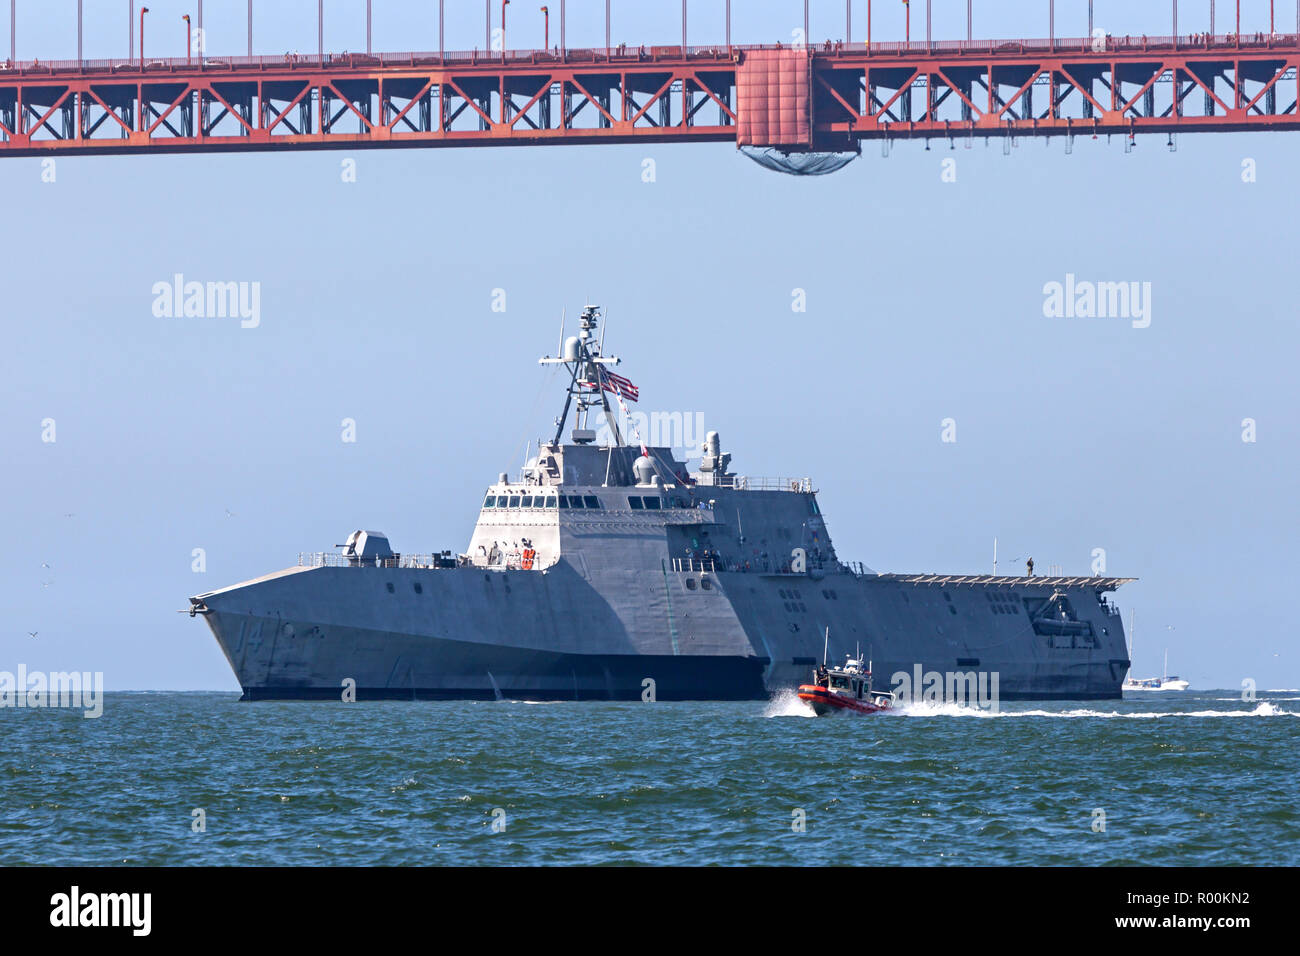 The littoral combat ship USS Manchester is escorted into the San Francisco Bay by a US Coast Guard MSST Team. Stock Photo